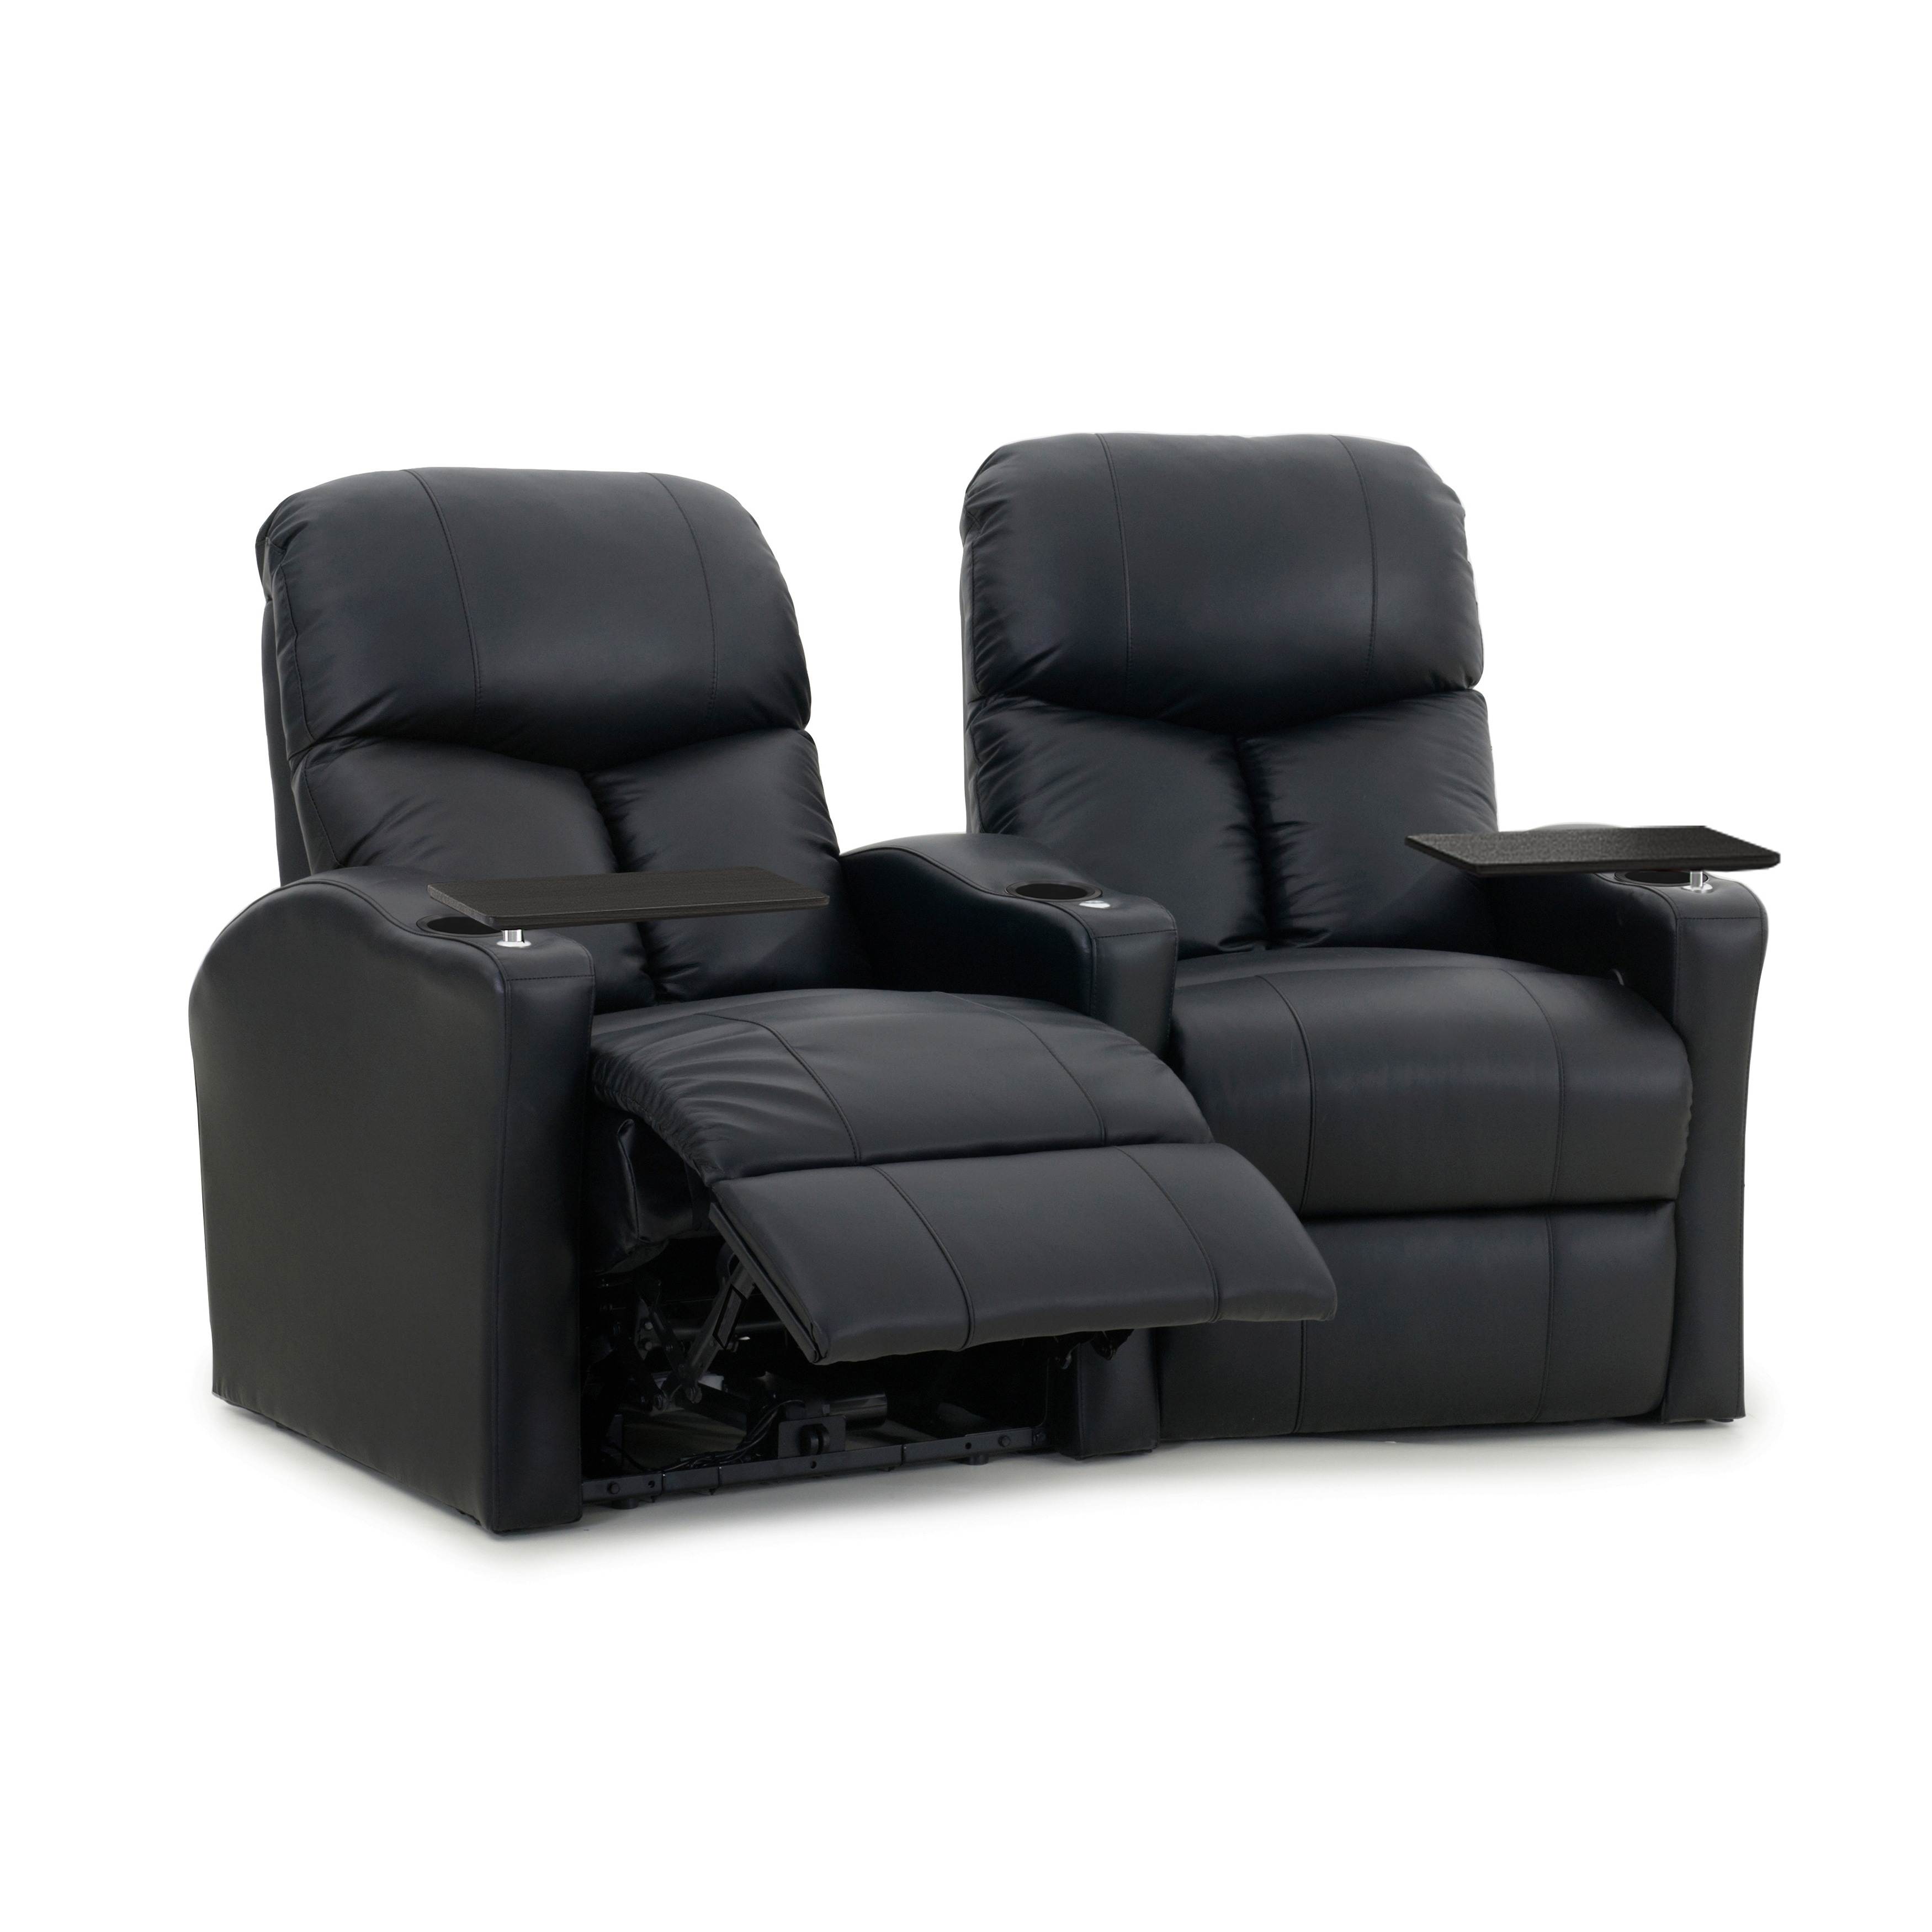 Octane Bolt XS400 Power Black Leather Home Theater Seatin...